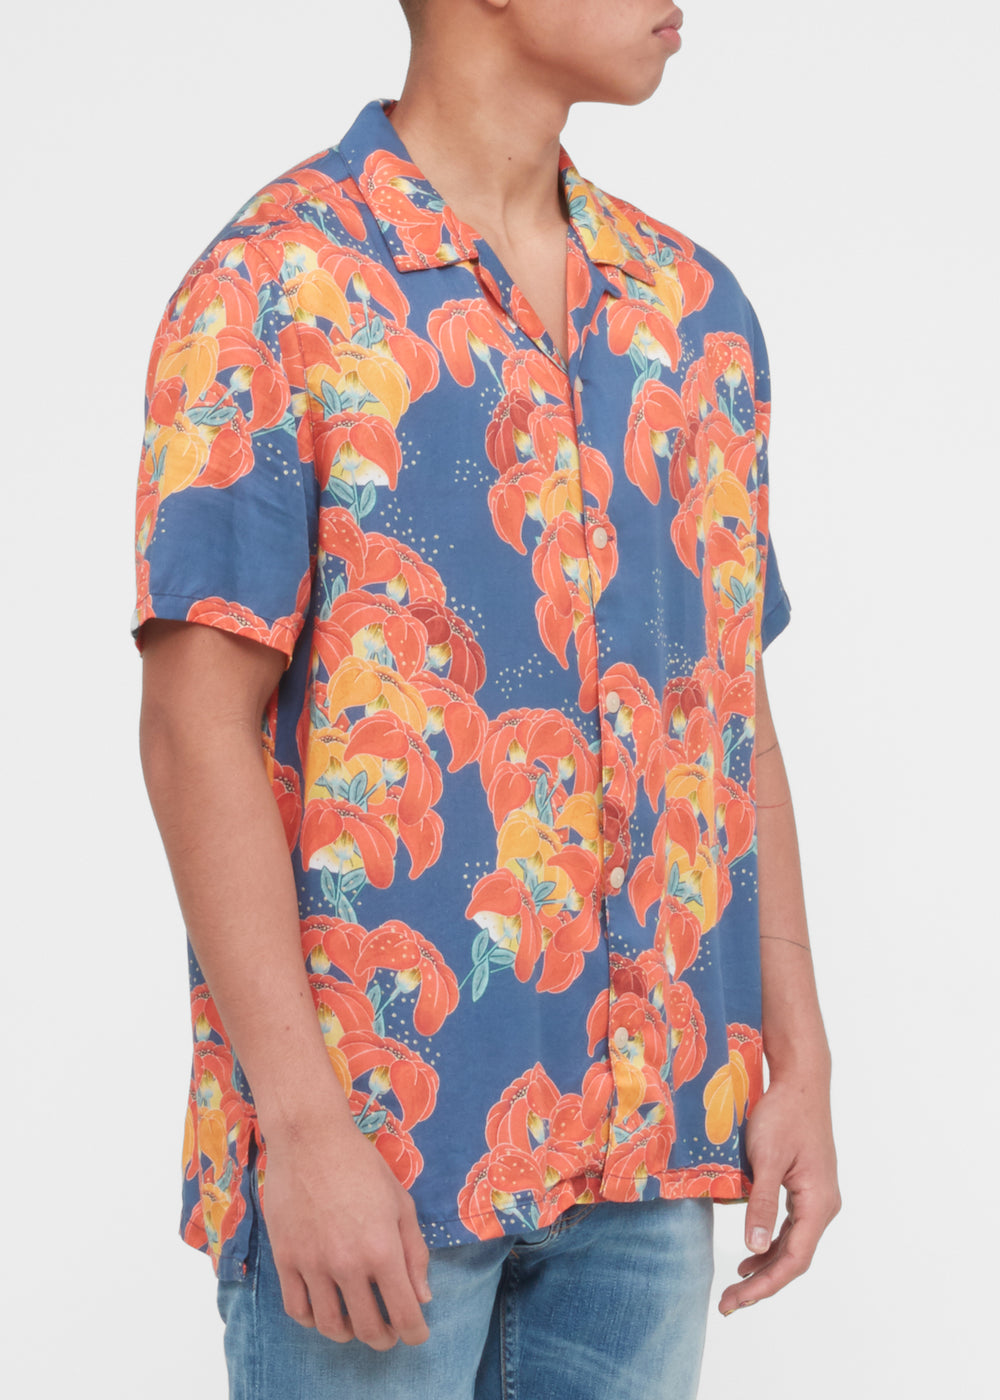 nudie-jeans-co-arvid-flower-shirt-140636-mlti-mlti-2